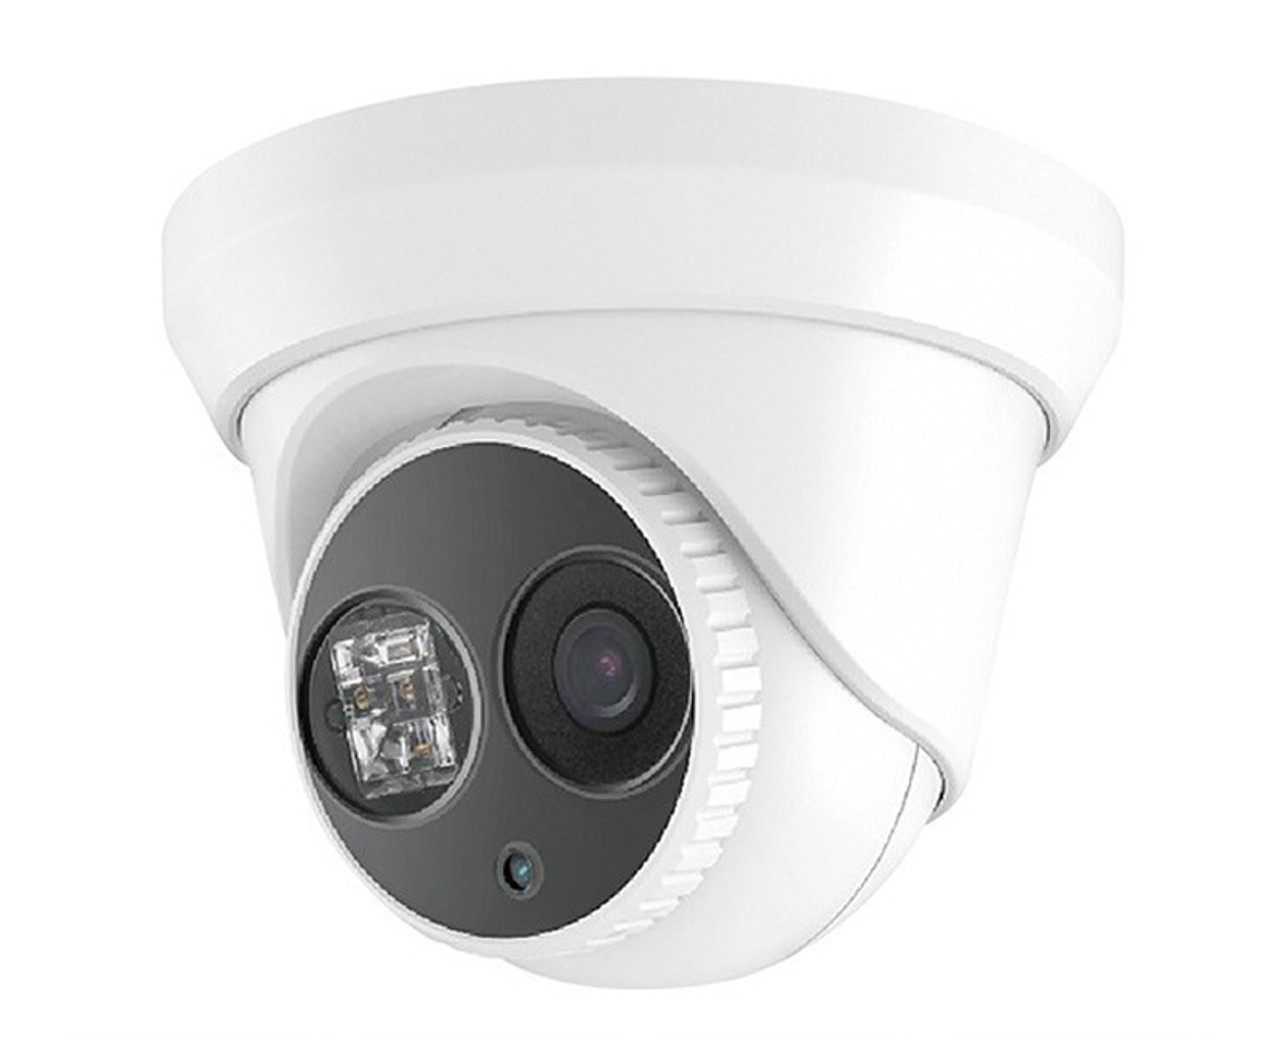 CMIP1022-28 HD IP 2MP 1080P 2.8mm Wide Lens 100ft IR Turret Dome Network Camera